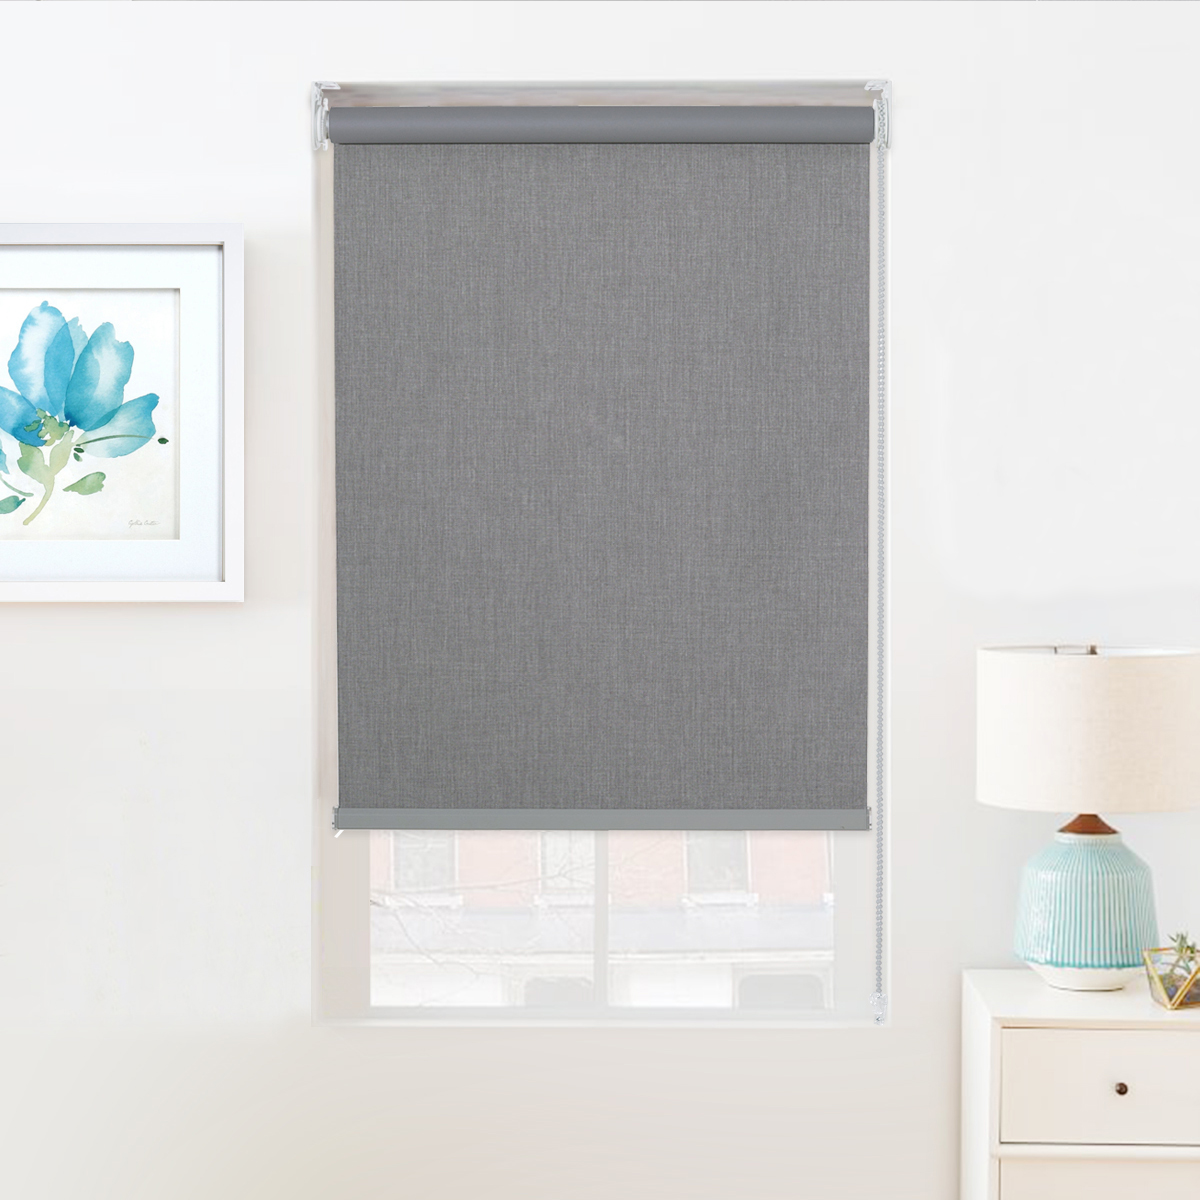 Blackout Roller Shade,UV Protection, Thermal Insulated